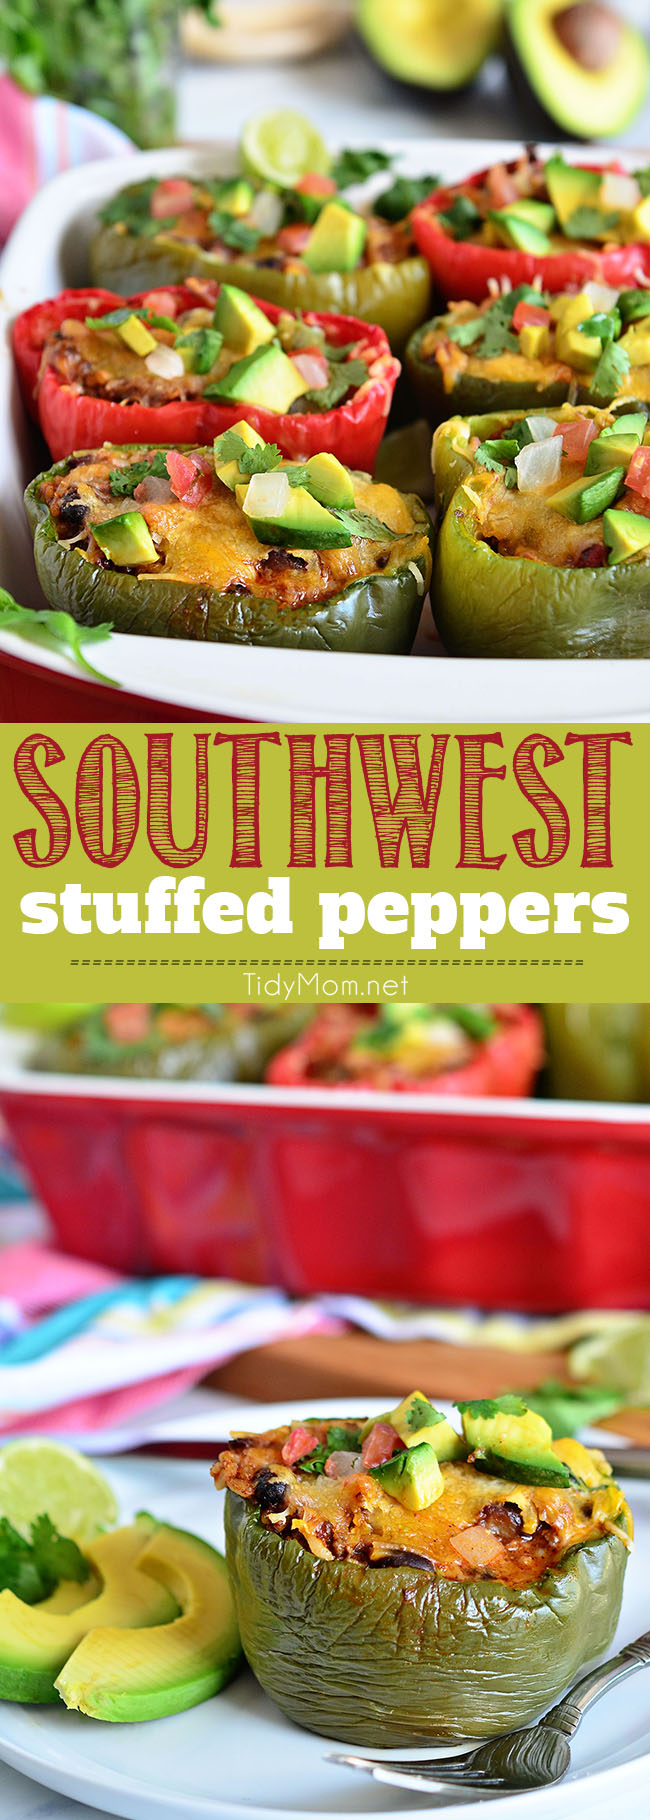 Fresh Bell peppers are filled with rice, browned ground beef, black beans, tomatoes, green chilies and cheese for an easy weeknight dinner with a southwest twist. Southwest Stuffed Peppers recipe at TidyMom.net #stuffedpeppers #southwest #taco #dinner #dinnerrecipe #easydinner